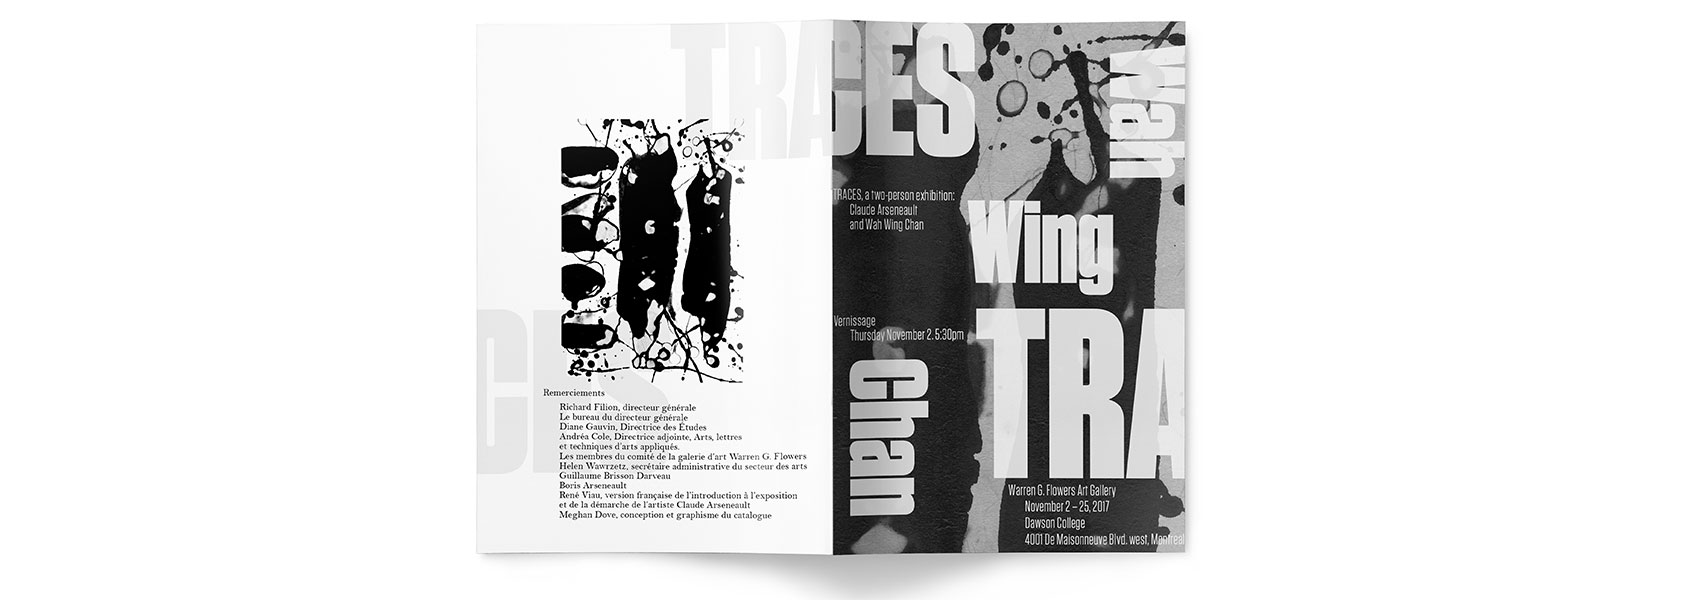 Inside spread of Traces Vernissage Catalogue featuring the print of Wah Wing Chang